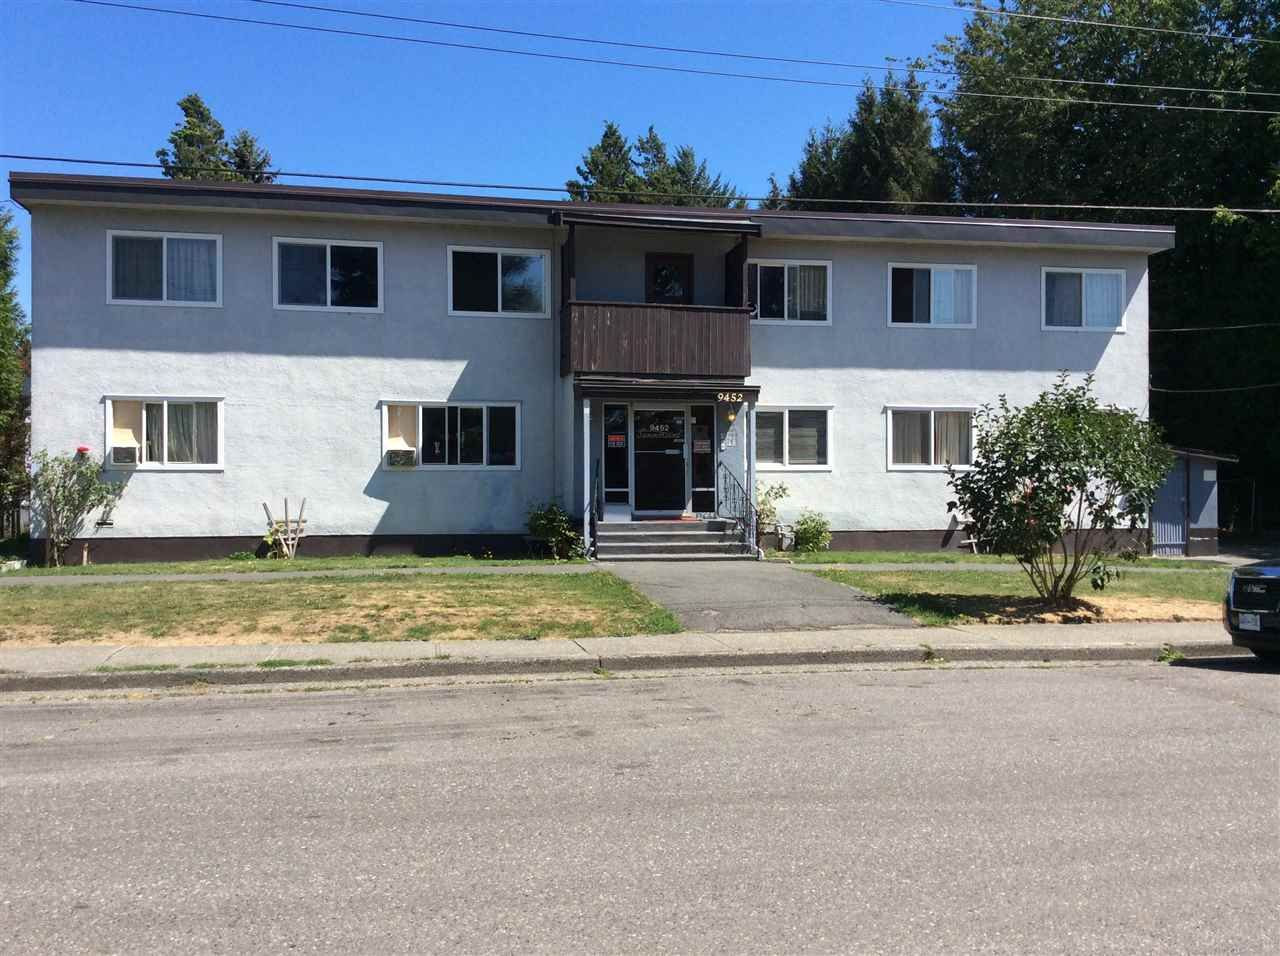 Main Photo: 9452 FLETCHER Street in Chilliwack: Chilliwack N Yale-Well Commercial for sale : MLS®# C8000896